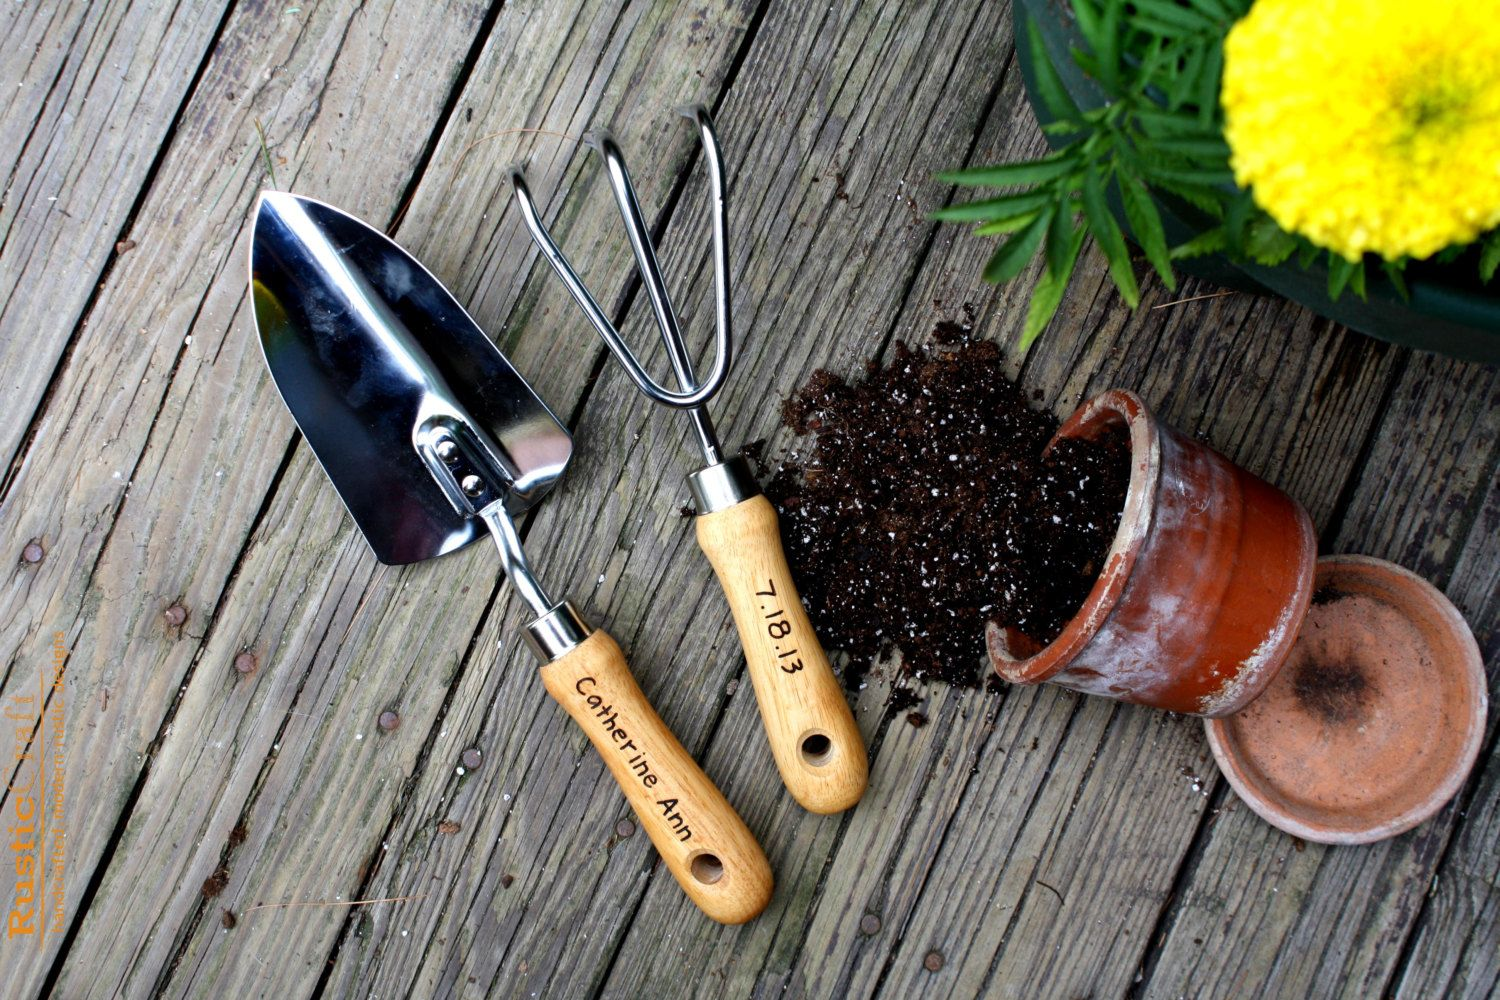 10 amazing dollar store gardening tools the budget diet for Gardening tools 7 letters